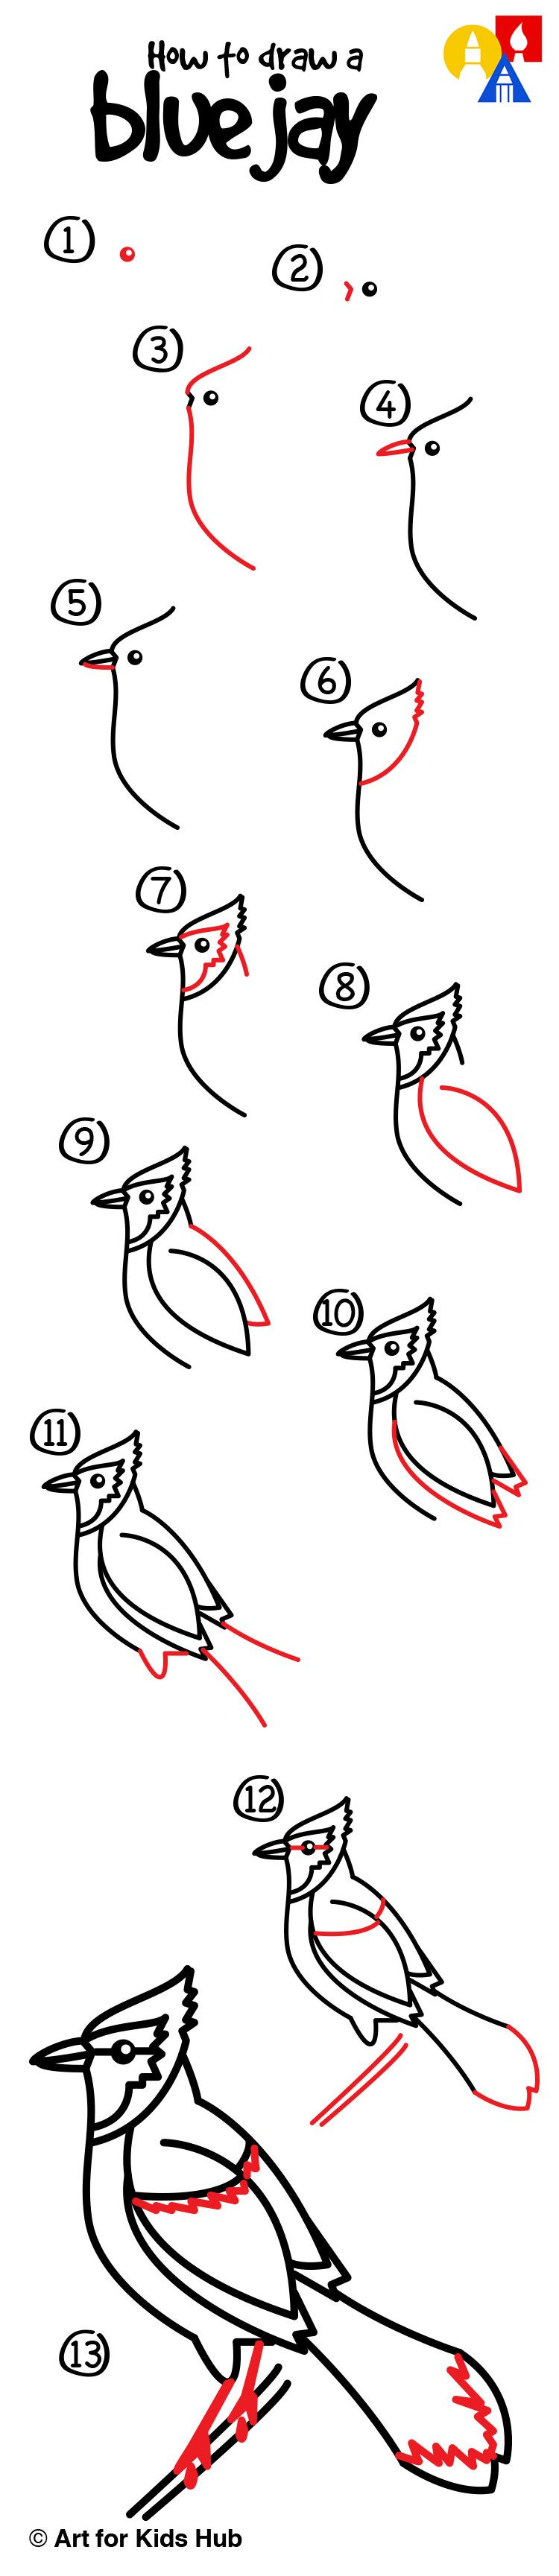 How To Draw A Hummingbird  How To Draw A Blue Jay For Kids!